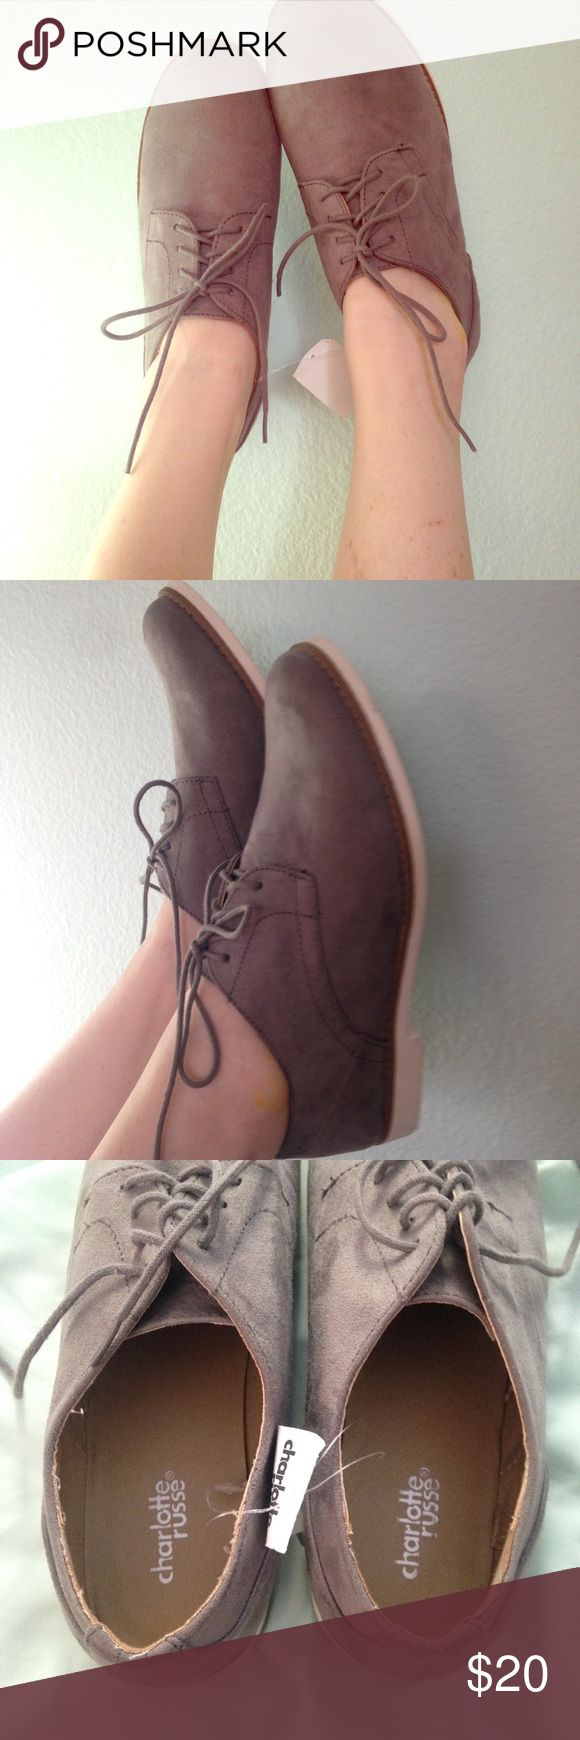 Grey suede oxfords Soft and cute Grey suede Oxford lace ups. Never worn with tags. Smart and sweet touch to any outfit! Charlotte Russe Shoes Flats & Loafers